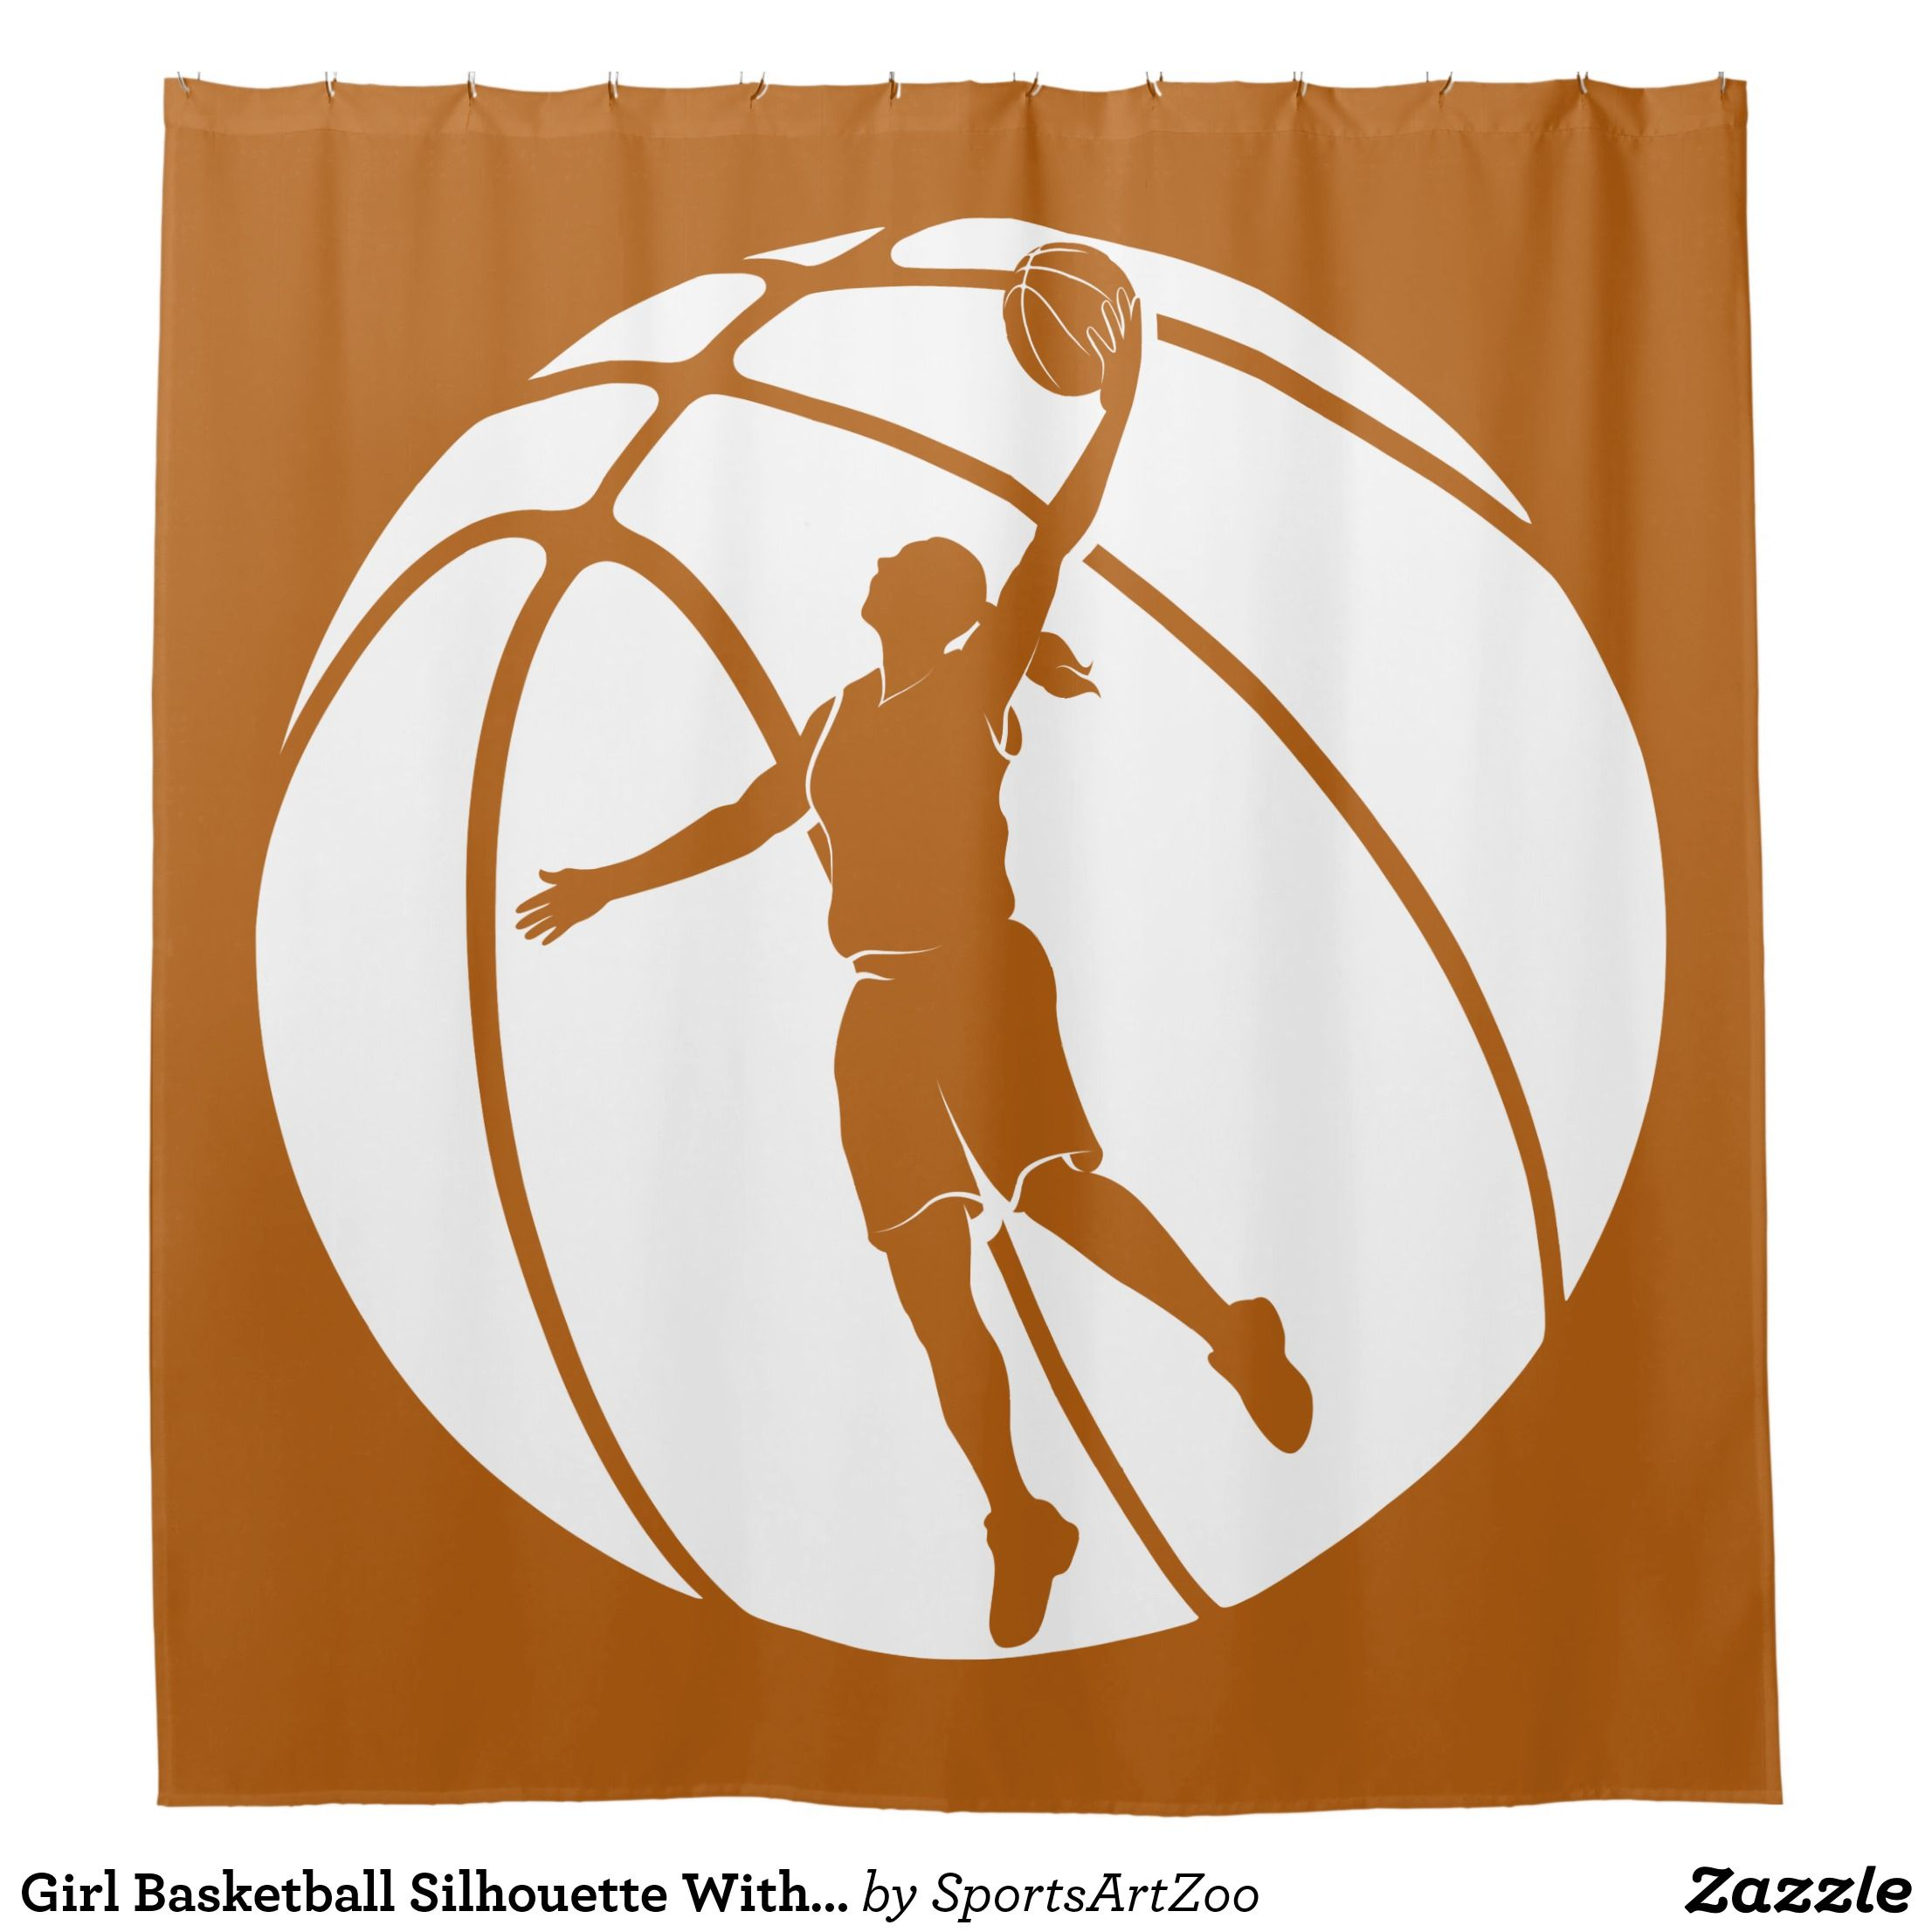 Girl Basketball Silhouette With Ball Shower Curtain Zazzle Com